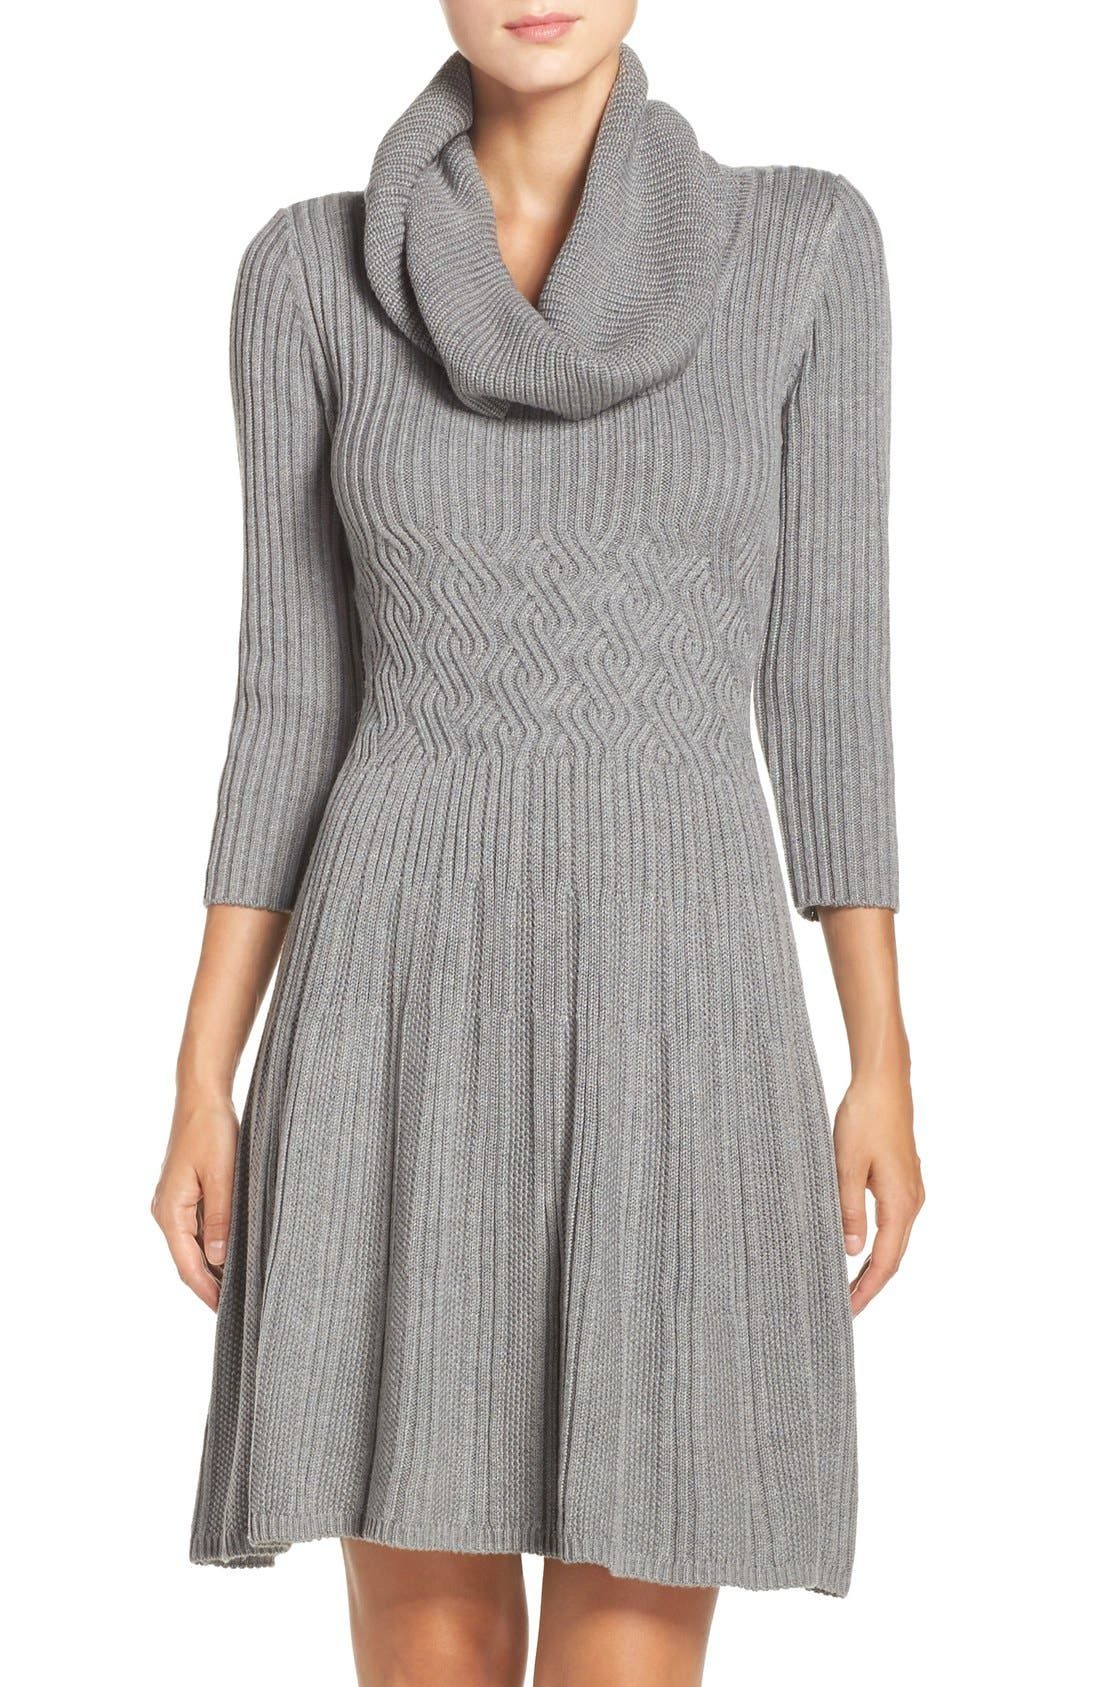 Alternate Image 1 Selected - Eliza J Fit & Flare Sweater Dress (Regular & Petite)